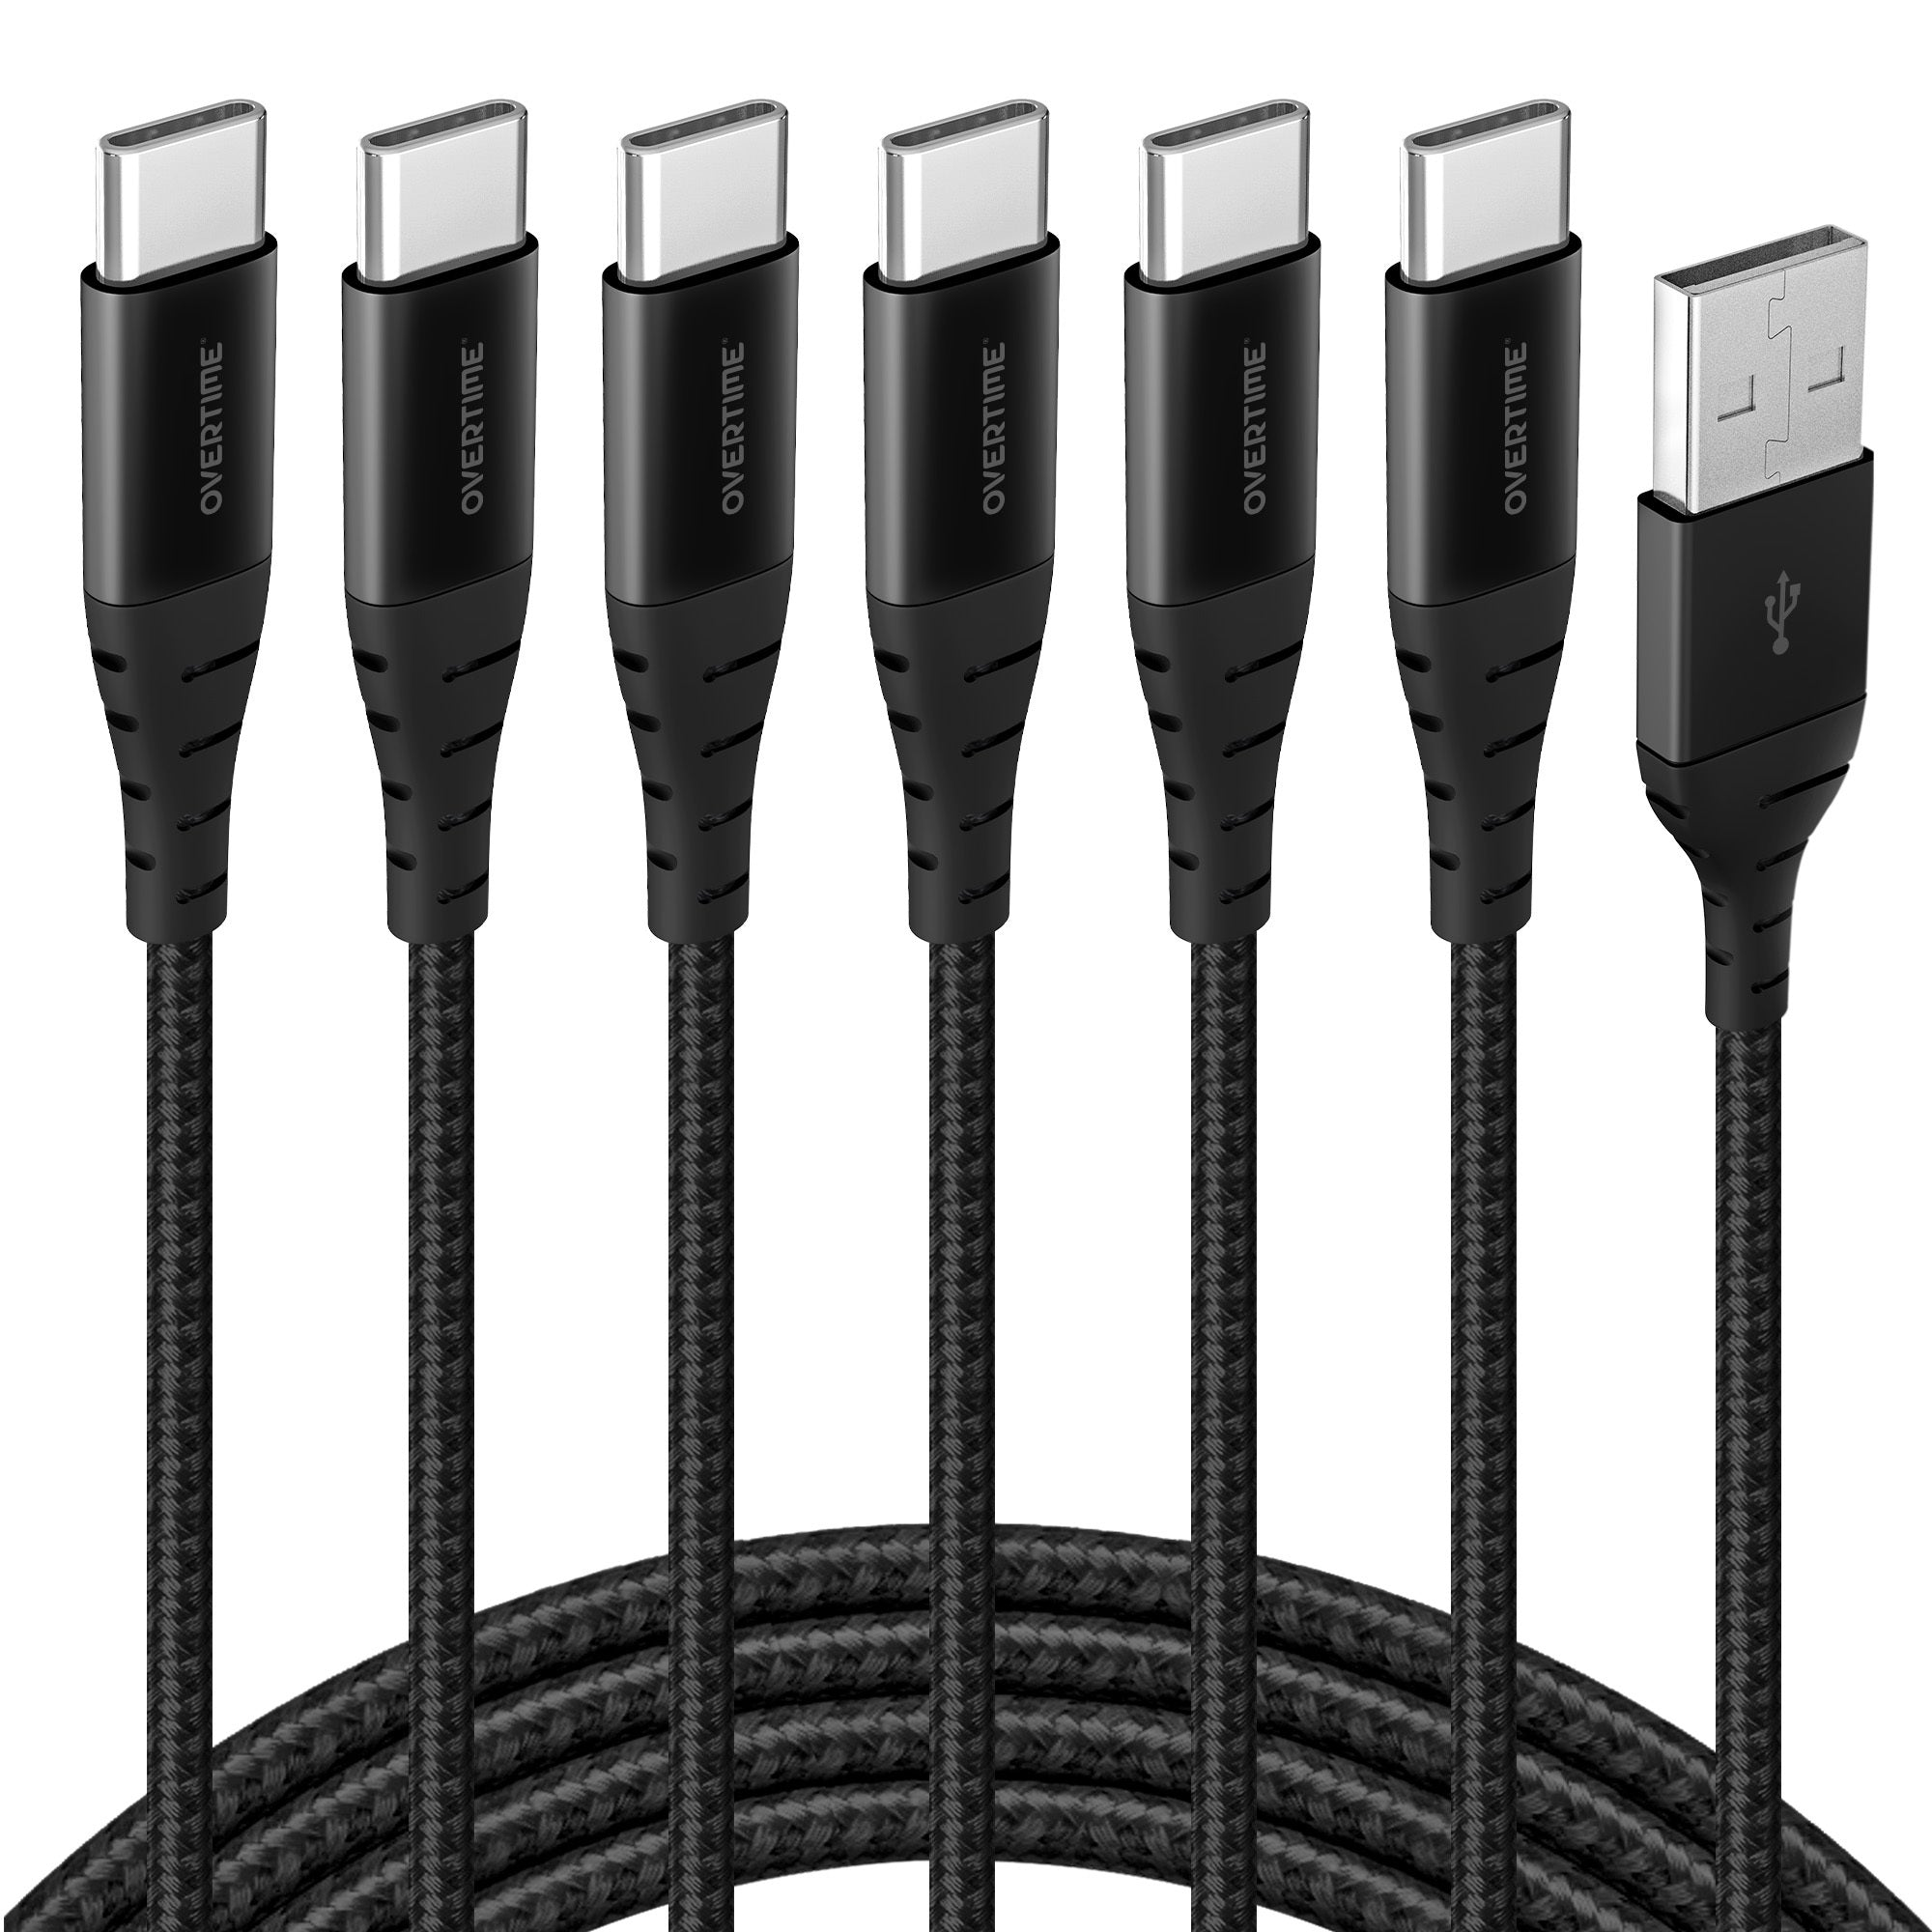 Overtime USB Type C Premium Braided Cable Fast Rapid Charging USB Cable 6 Ft Black (6 Pack)